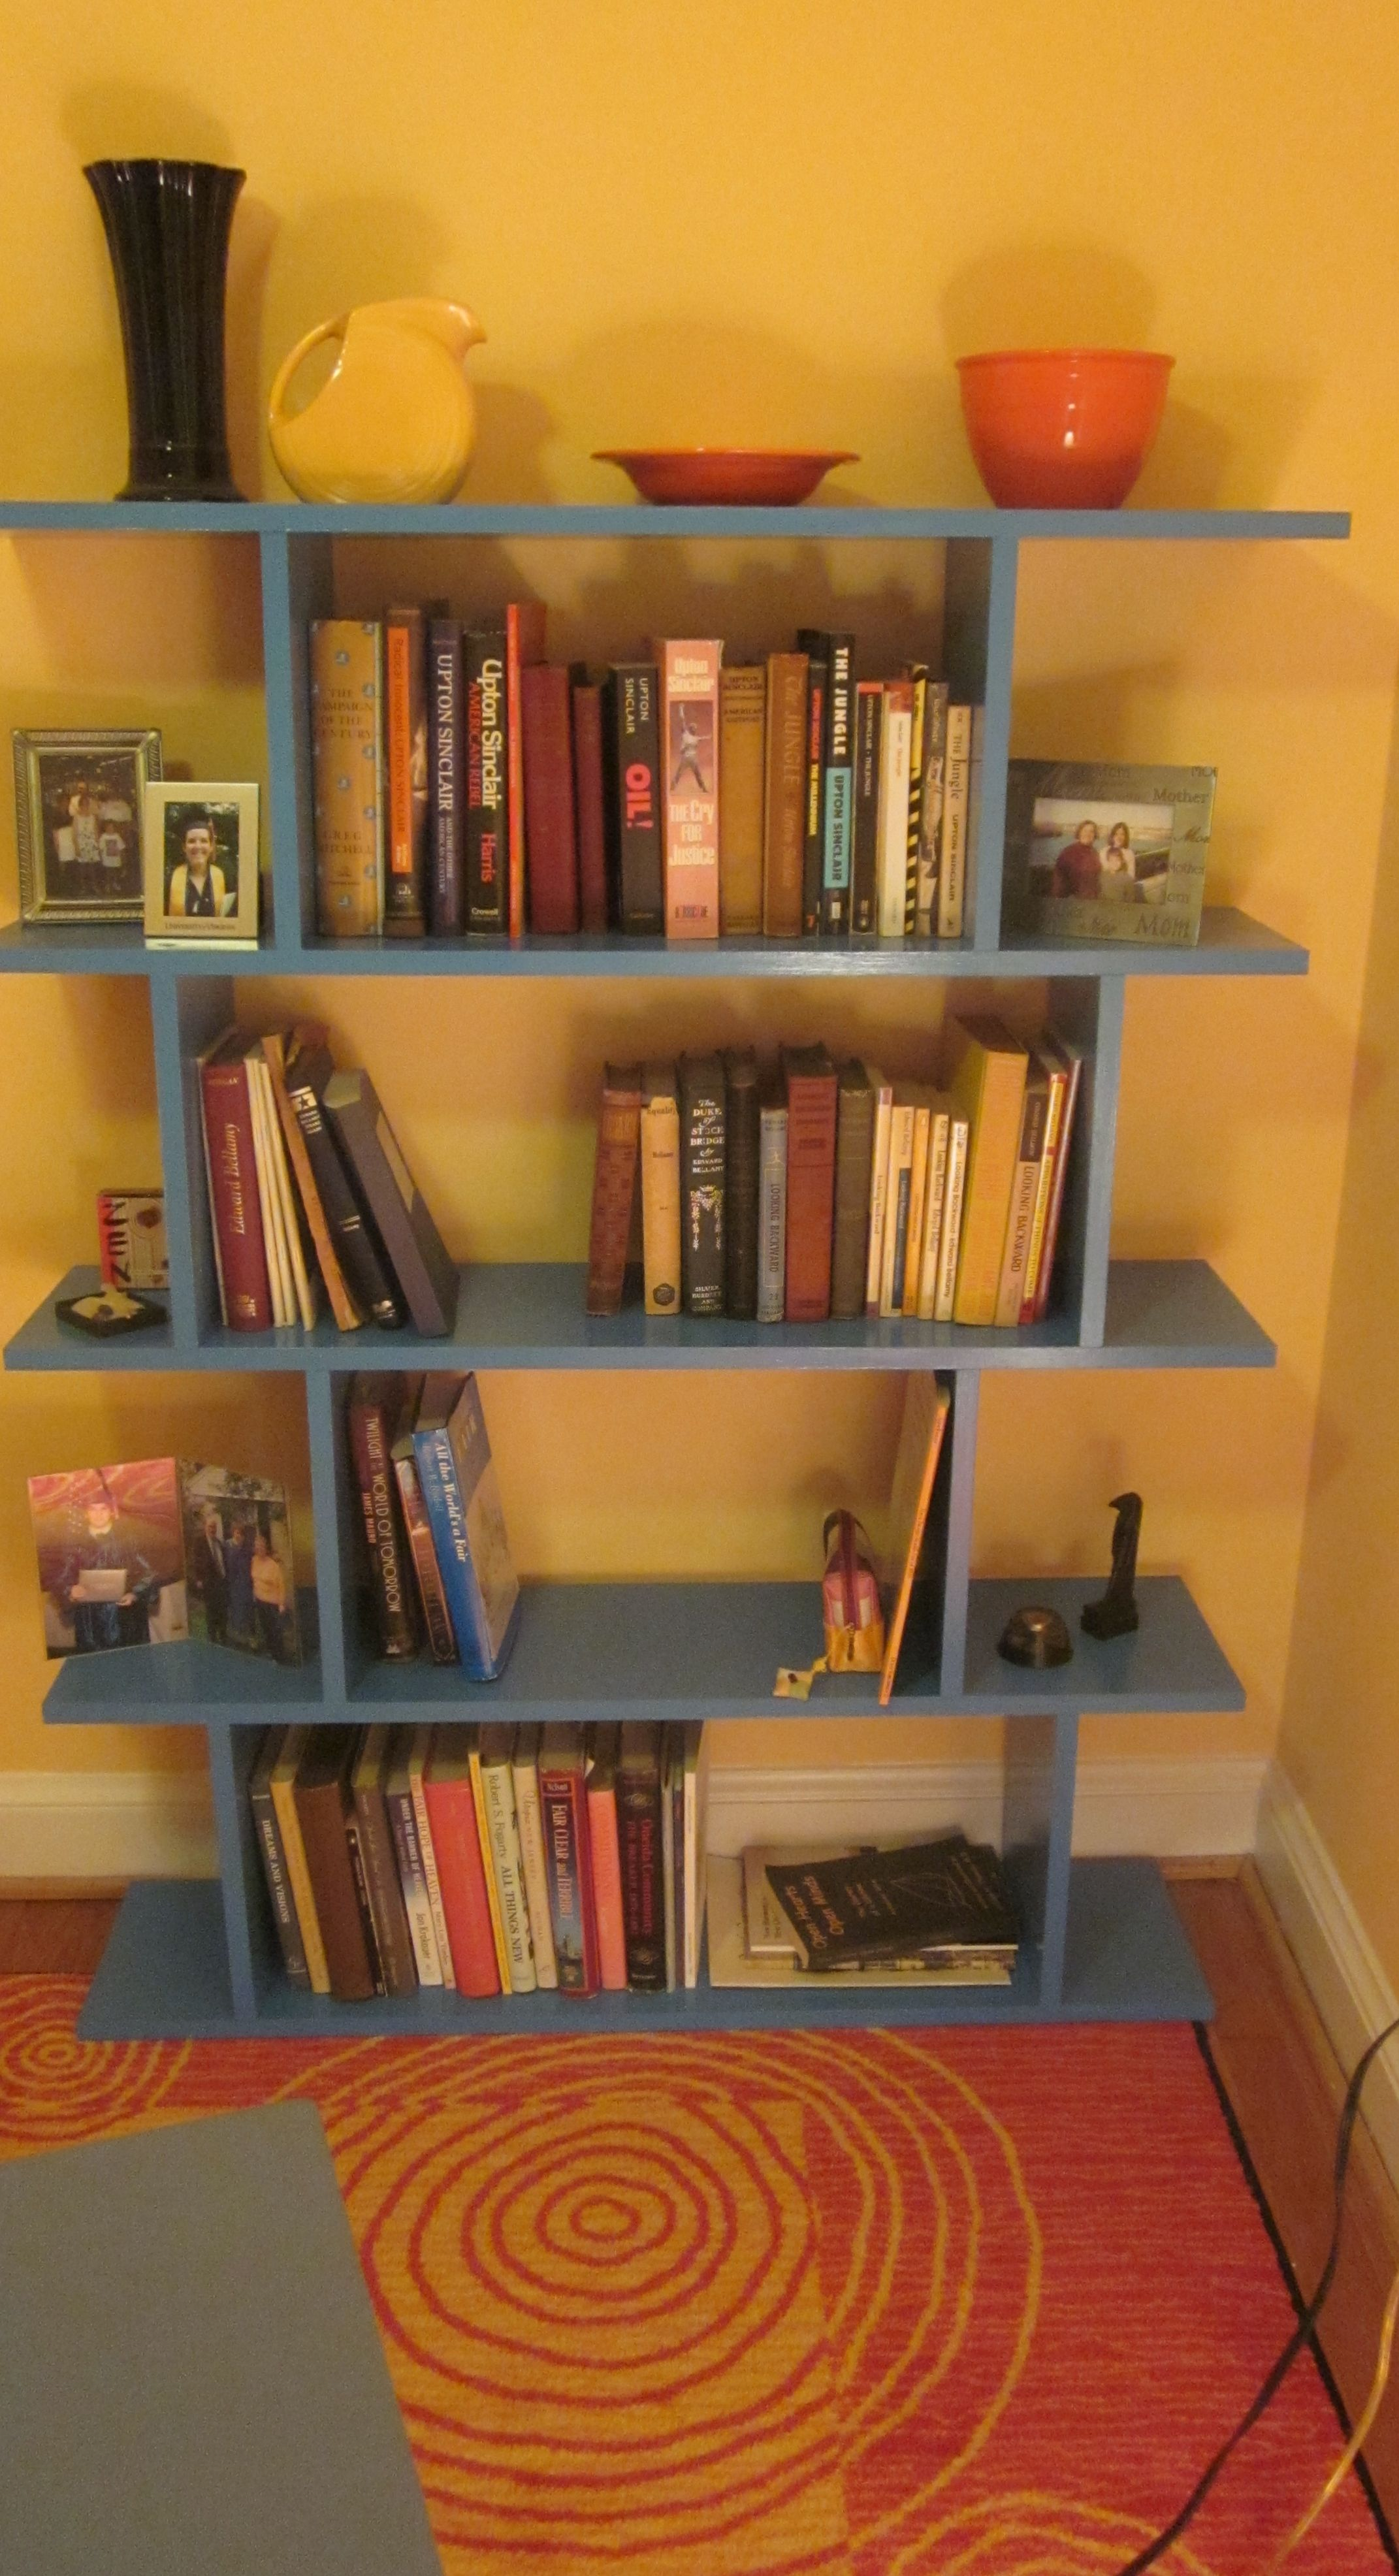 The look for much less diy open shelving apartment therapy my turquoise version of do it yourself shelf from apartment therapy via pinterest solutioingenieria Images